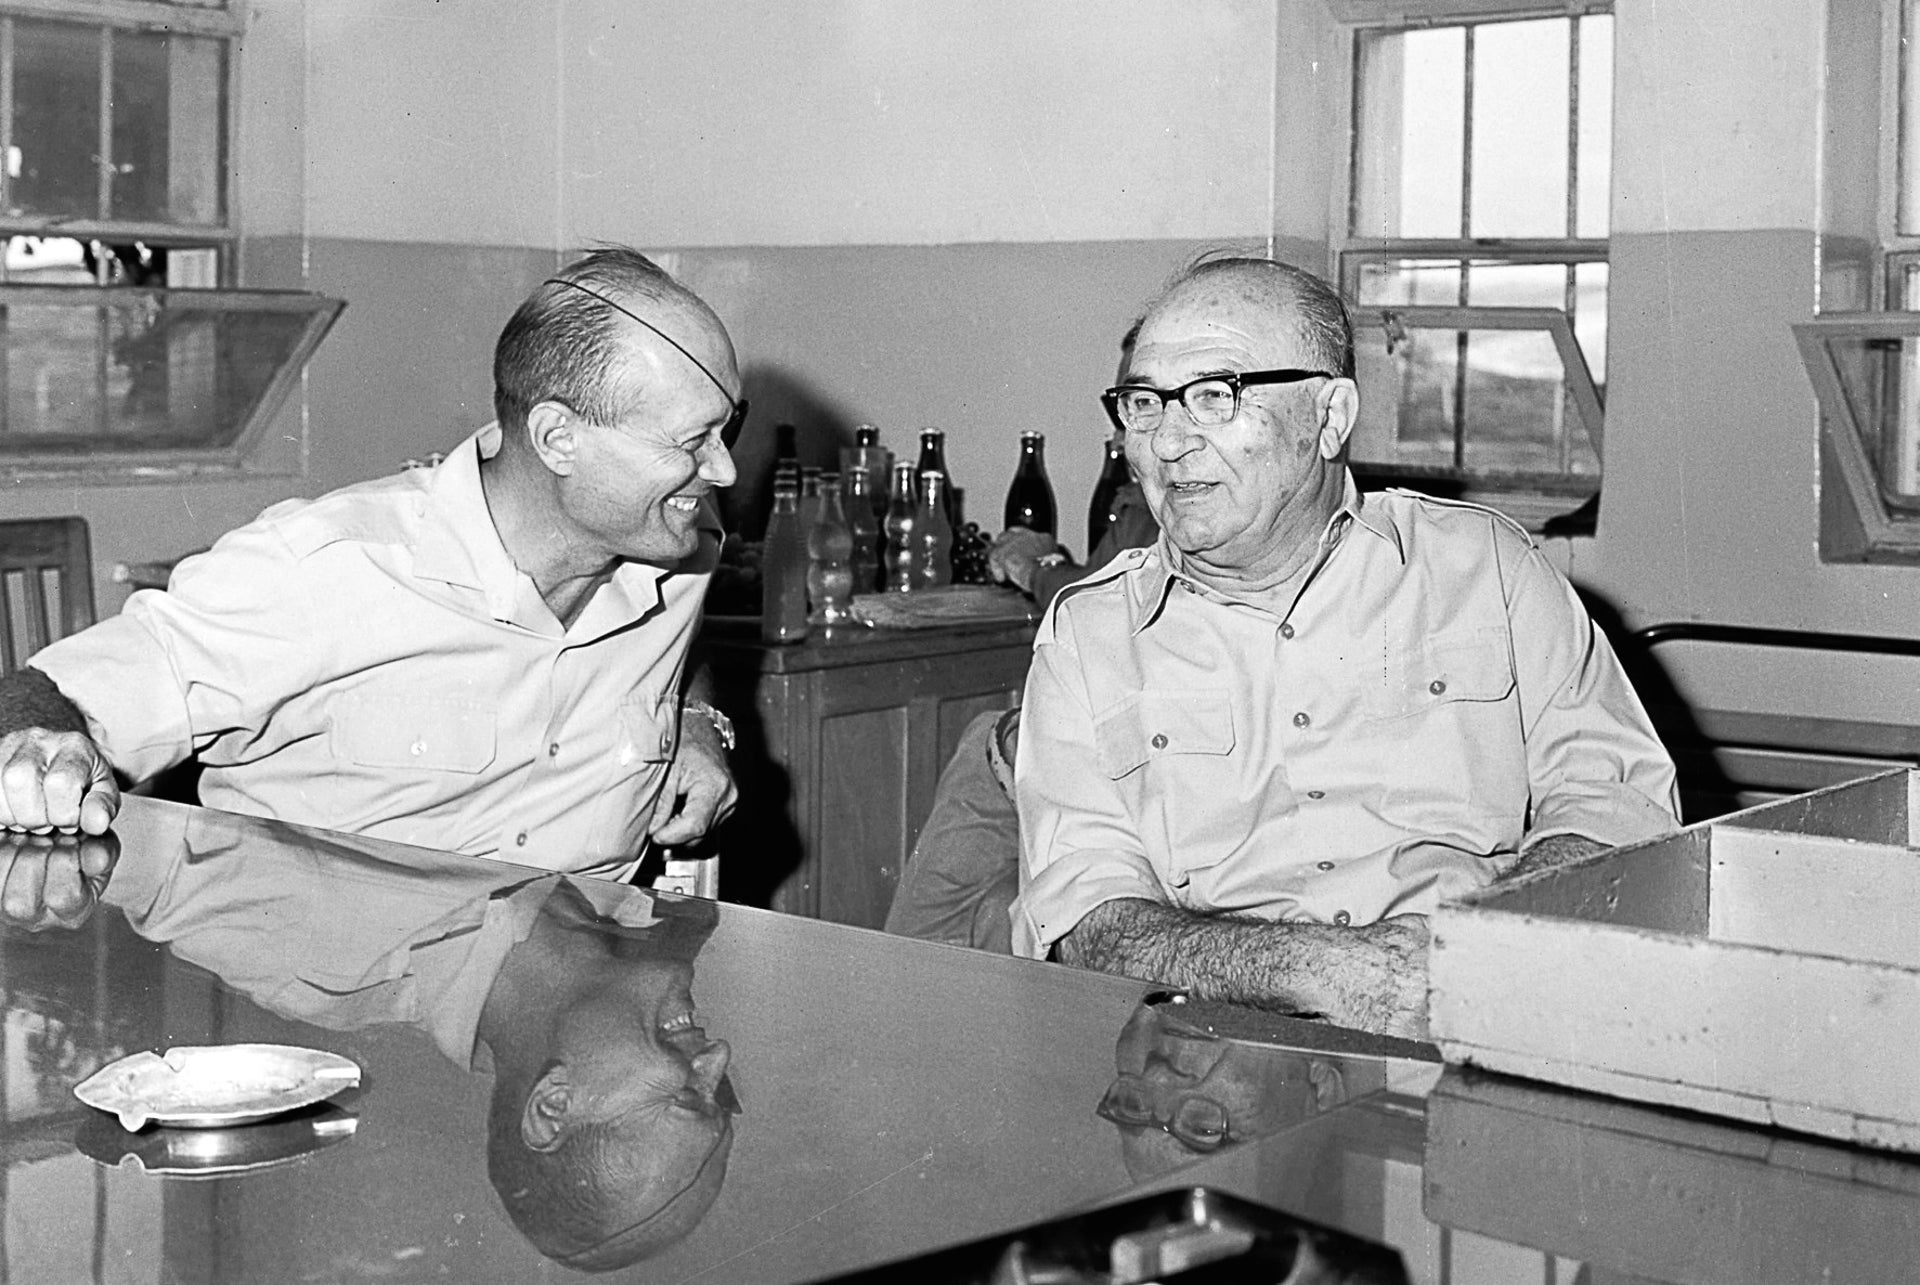 Prime Minister Levi Eshkol and Defense Minister Moshe Dayan during their visit to army installations on the West Bank, September 20, 1967.